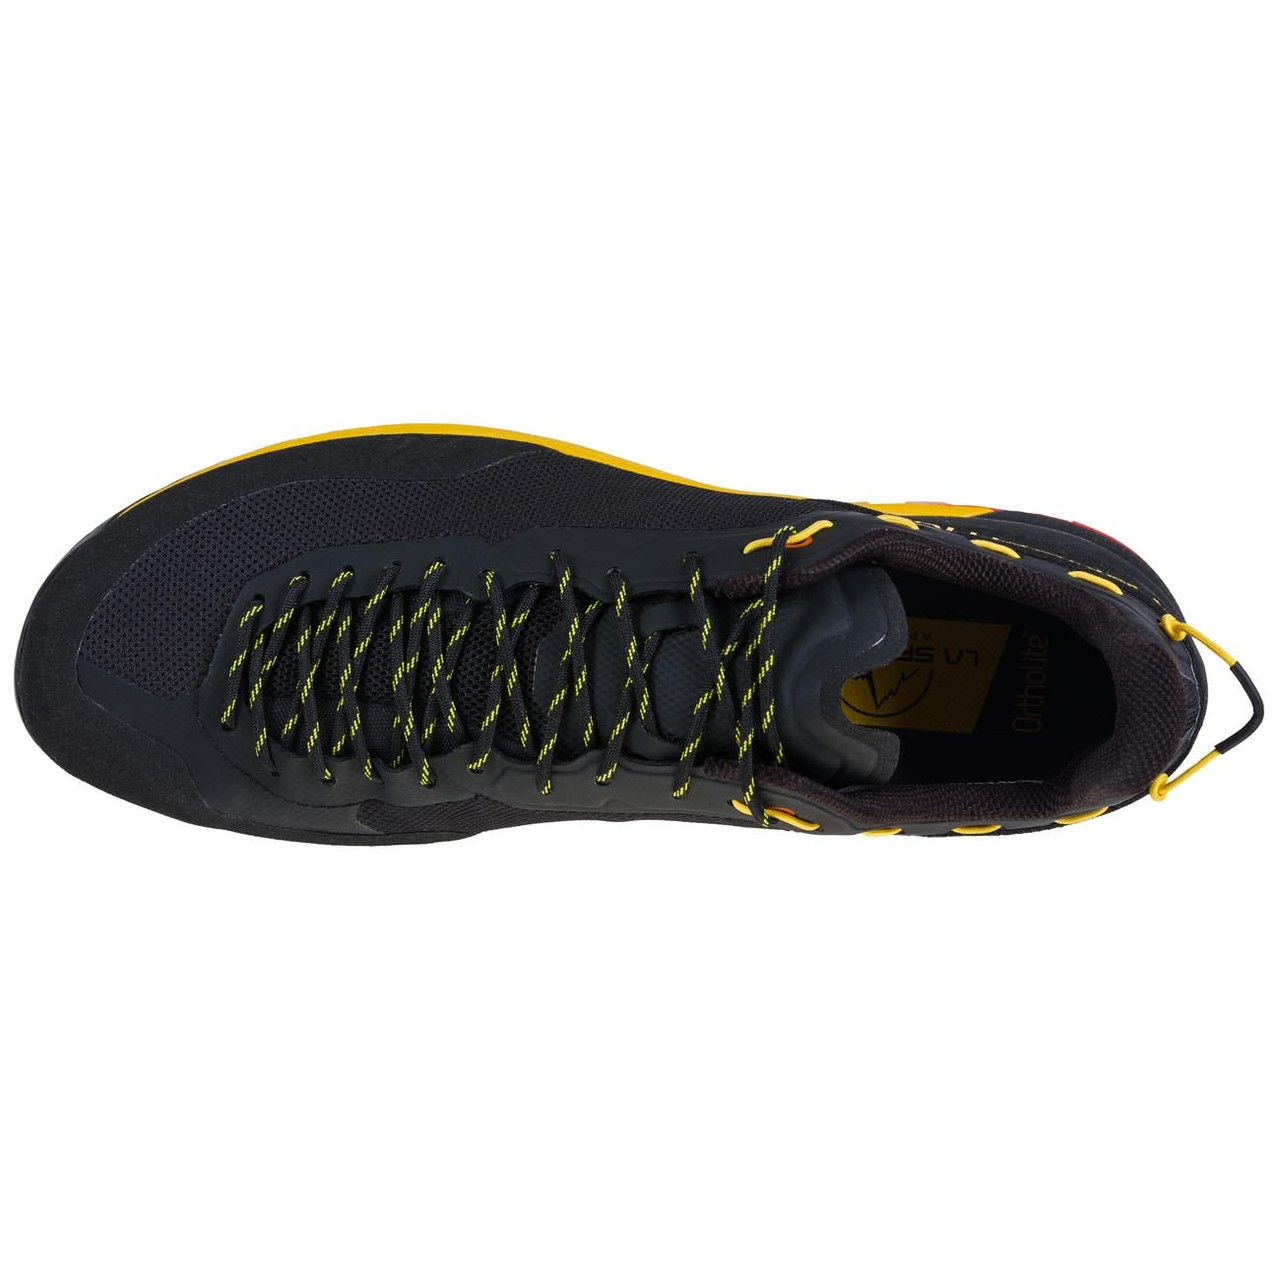 La Sportiva TX Guide - Men's Approach Shoe Top Online at Mountain Mail Order South Africa